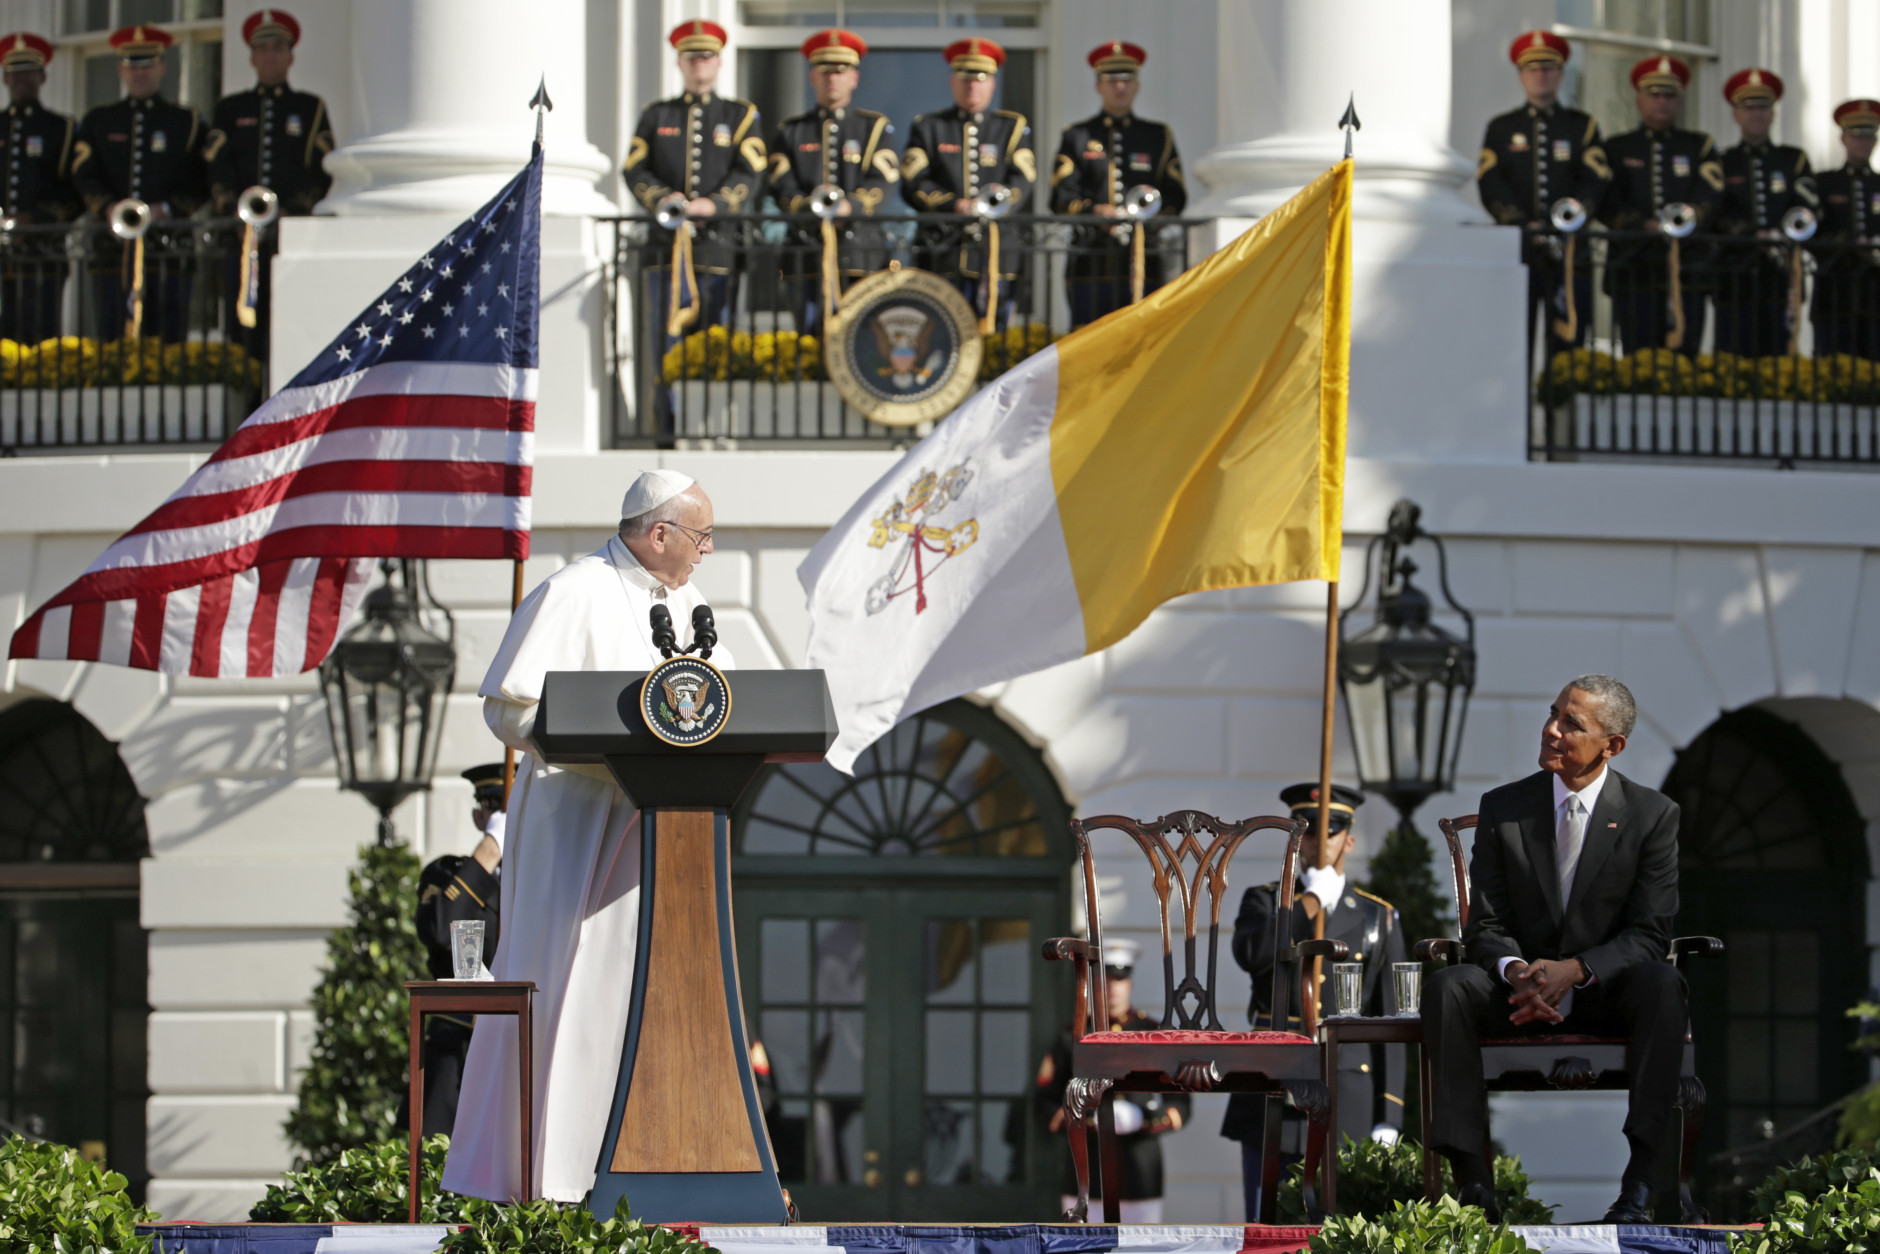 Pope Francis turns toward President Barack Obama during his welcoming remarks at the state arrival ceremony in his honor on the South Lawn of the White House in Washington, Wednesday, Sept. 23, 2015. (AP Photo/Pablo Martinez Monsivais)